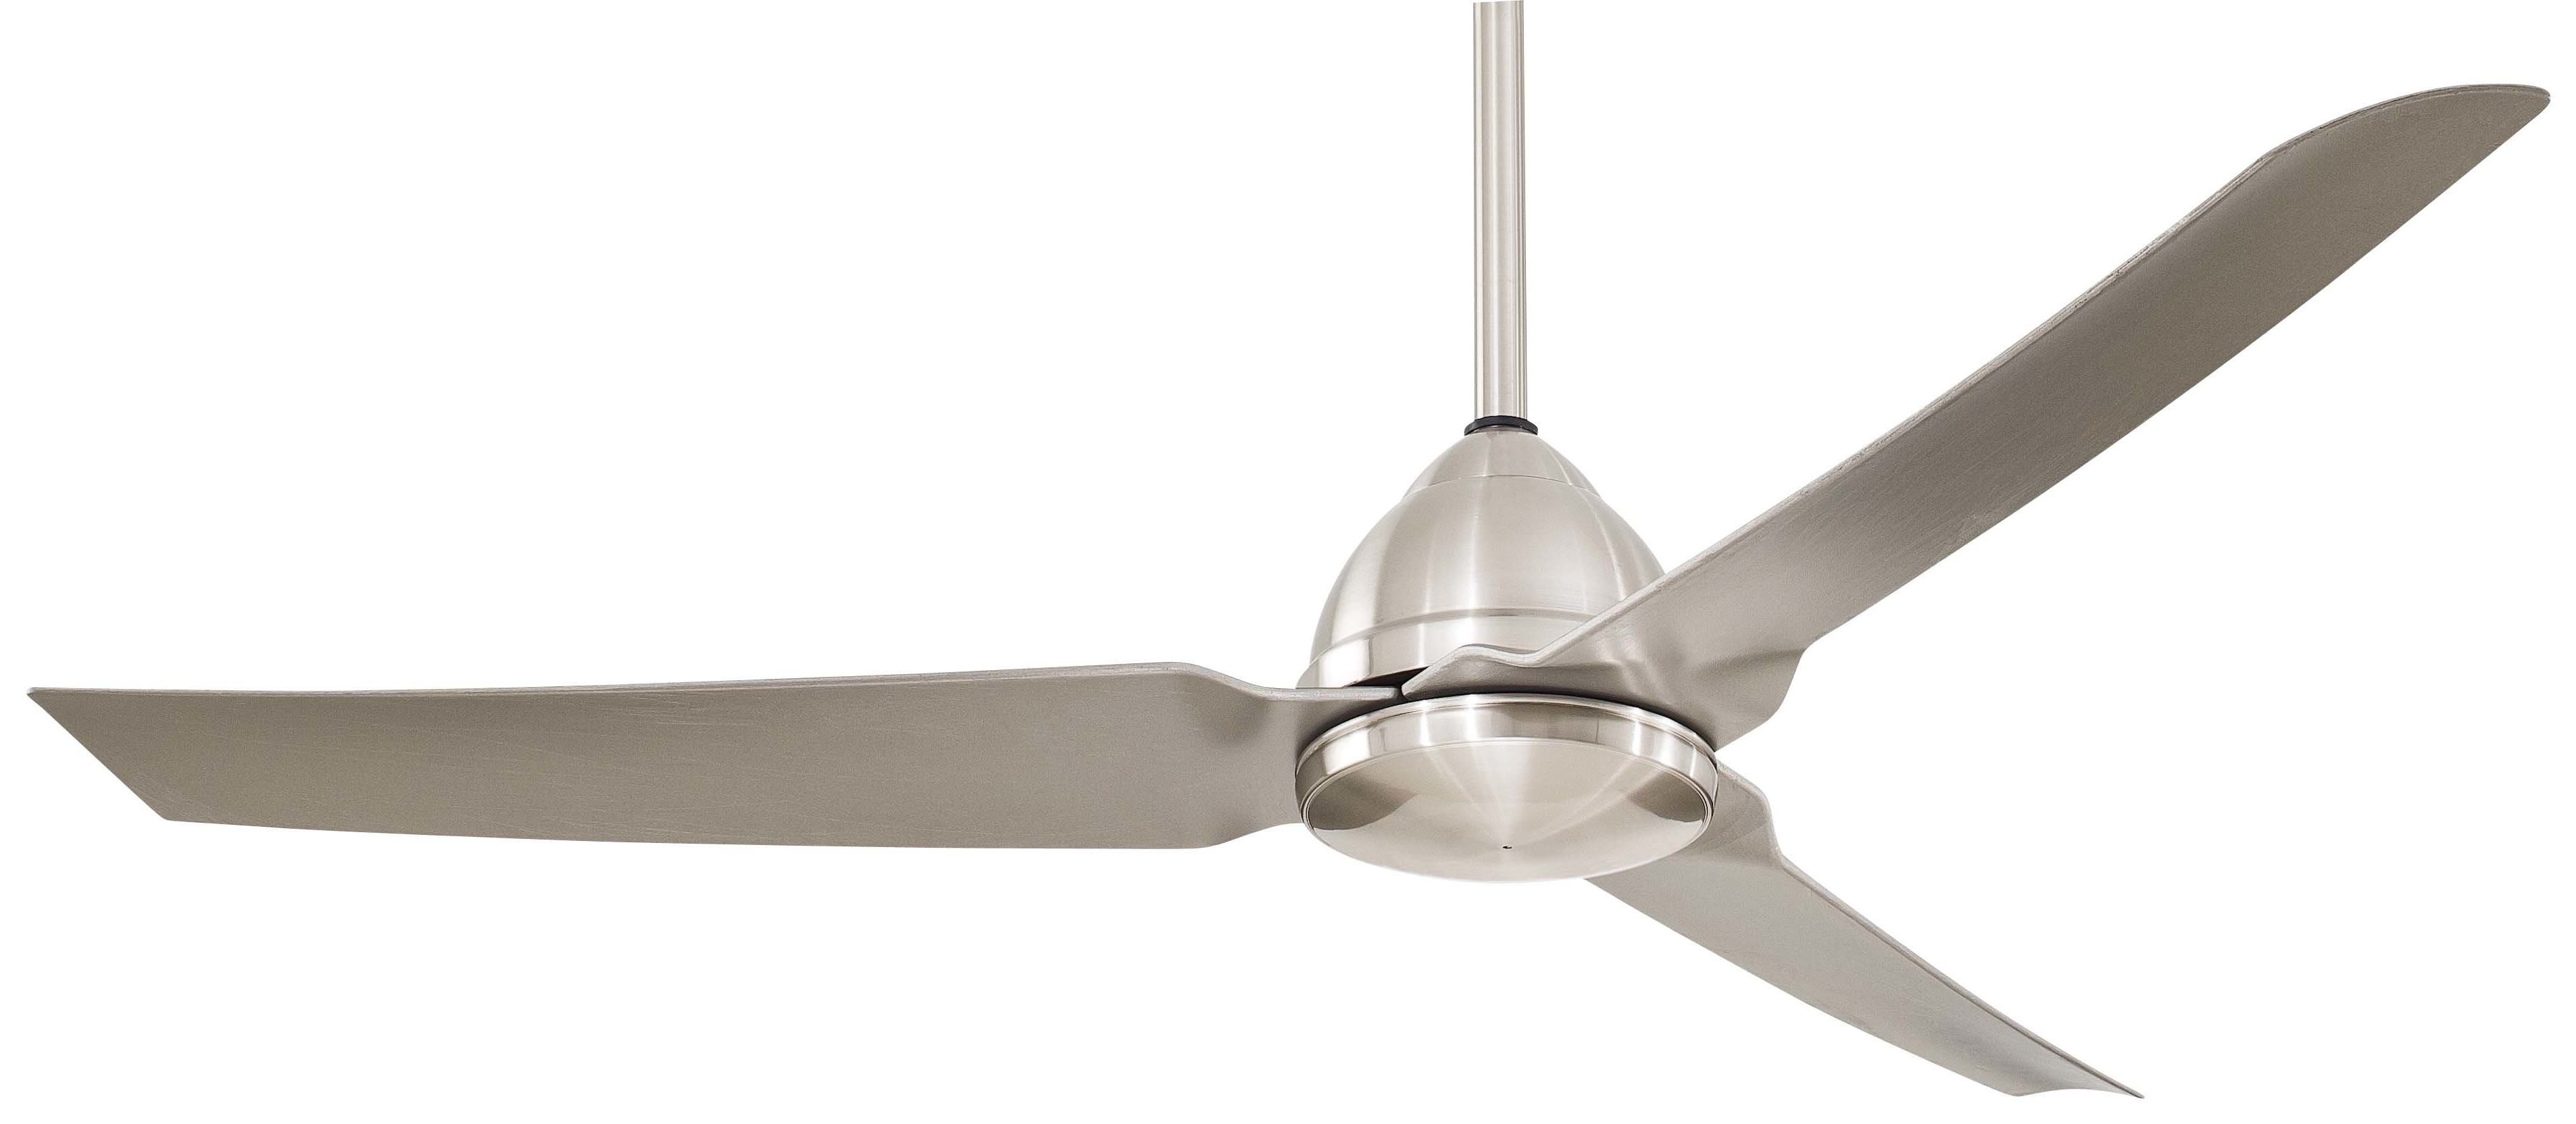 Wayfair With Regard To High Volume Outdoor Ceiling Fans (View 19 of 20)